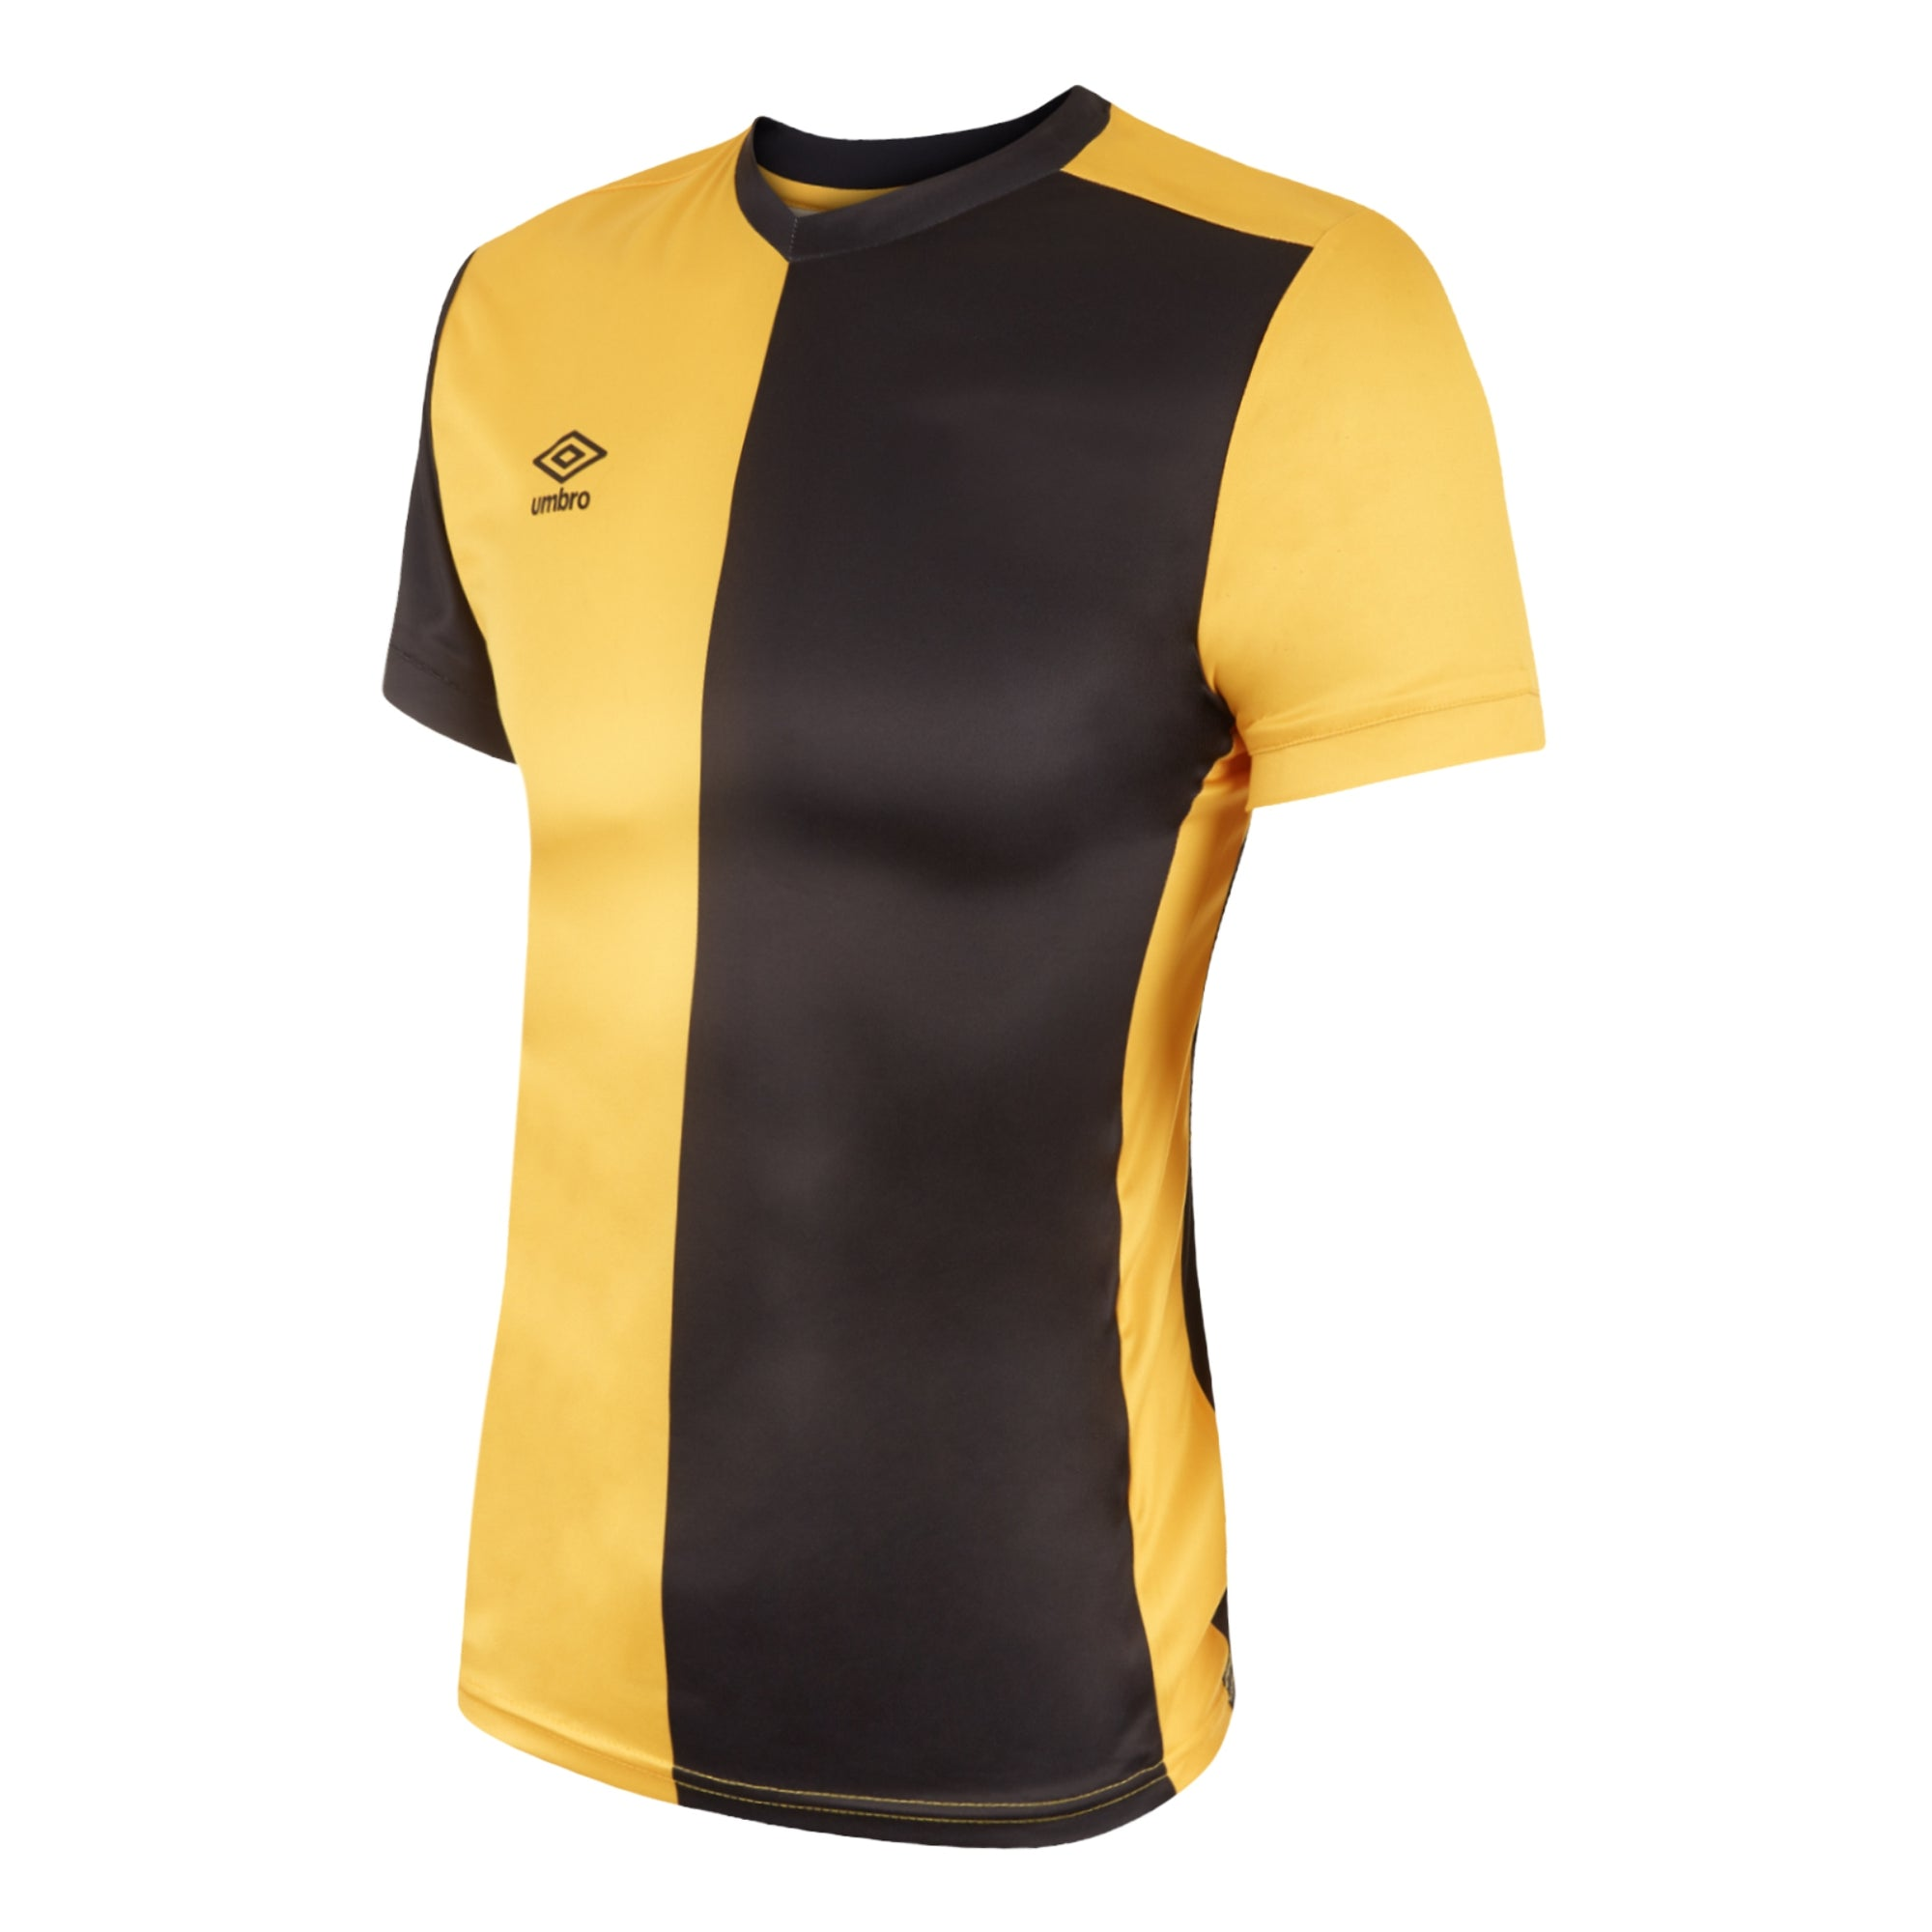 Umbro 50/50 SS Jersey - Yellow/Black